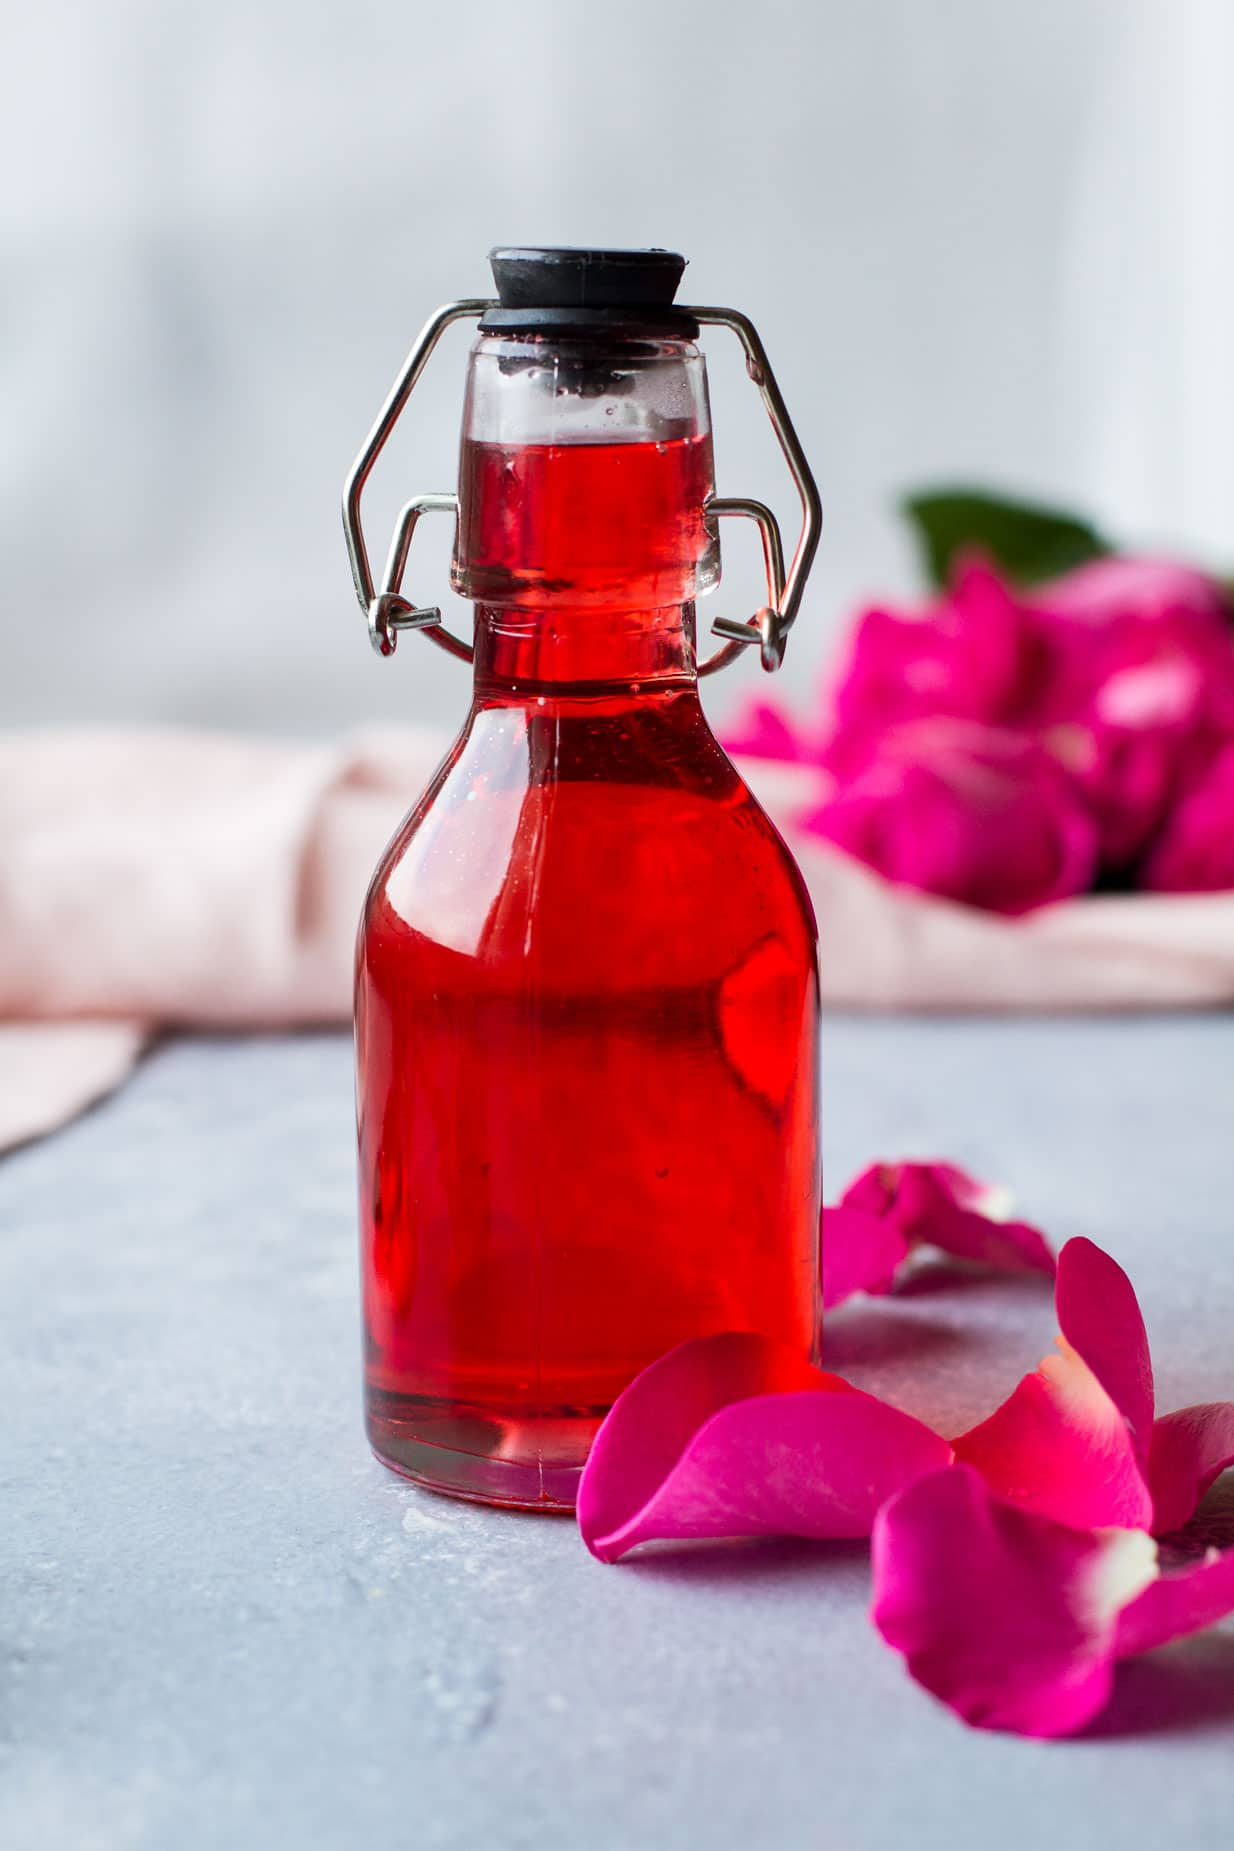 Red rose syrup in a clear bottle. Pink flowers in the background.